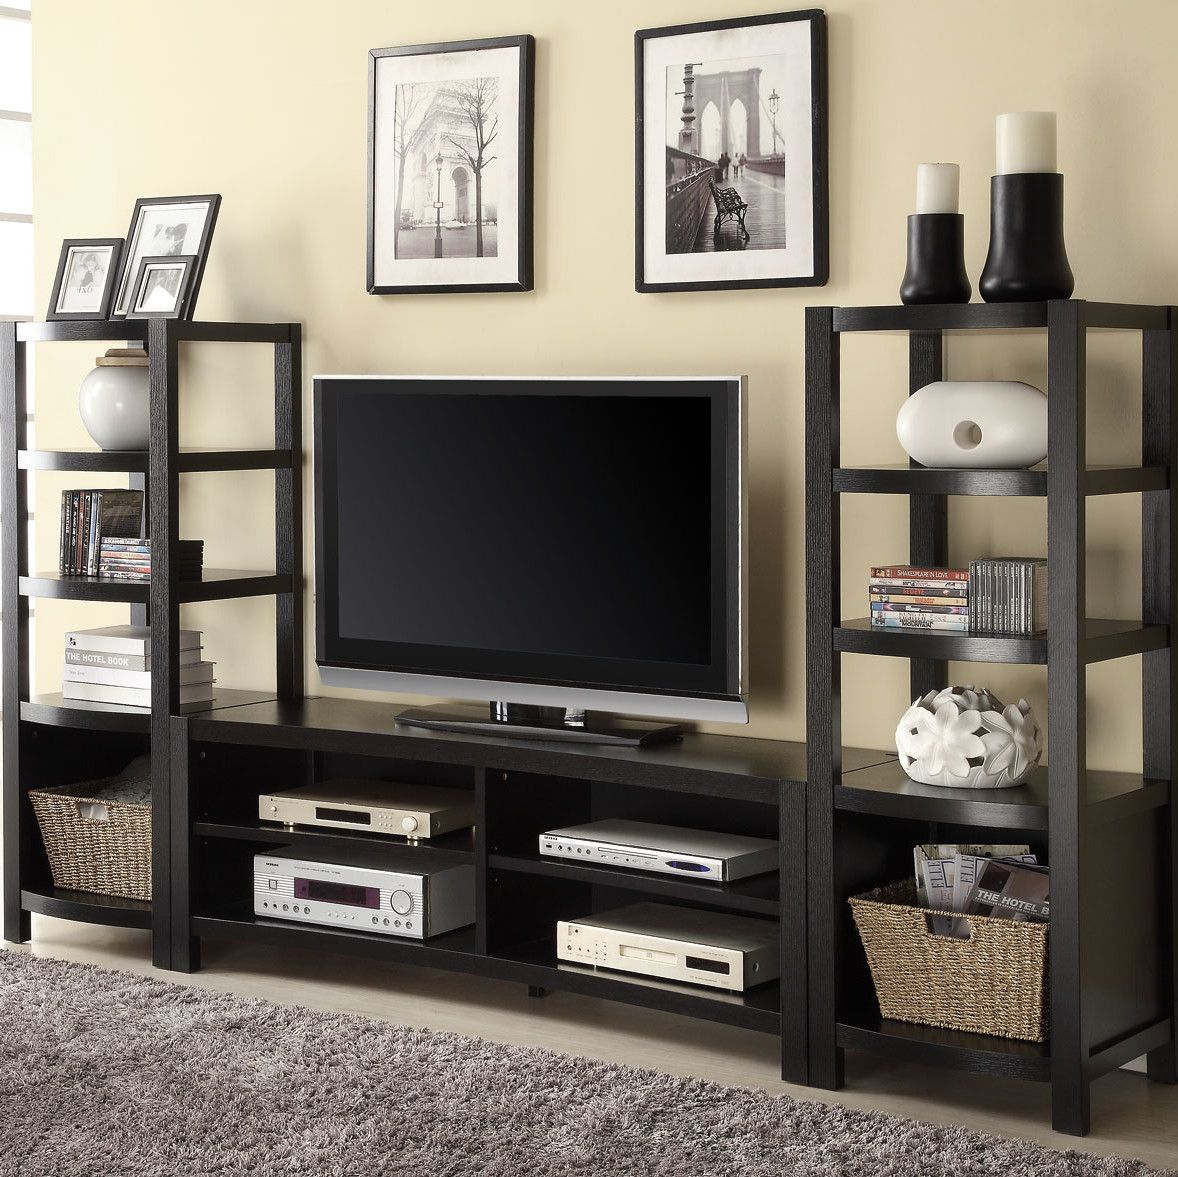 Wildon home entertainment center u reviews wayfair house ideas